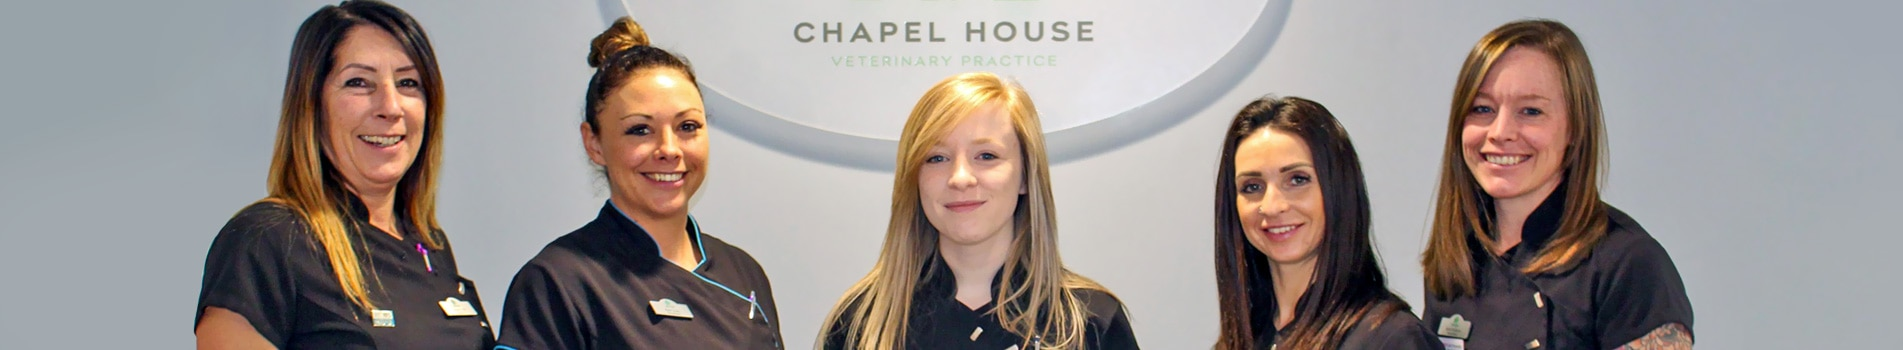 Contact Chapel House Vets